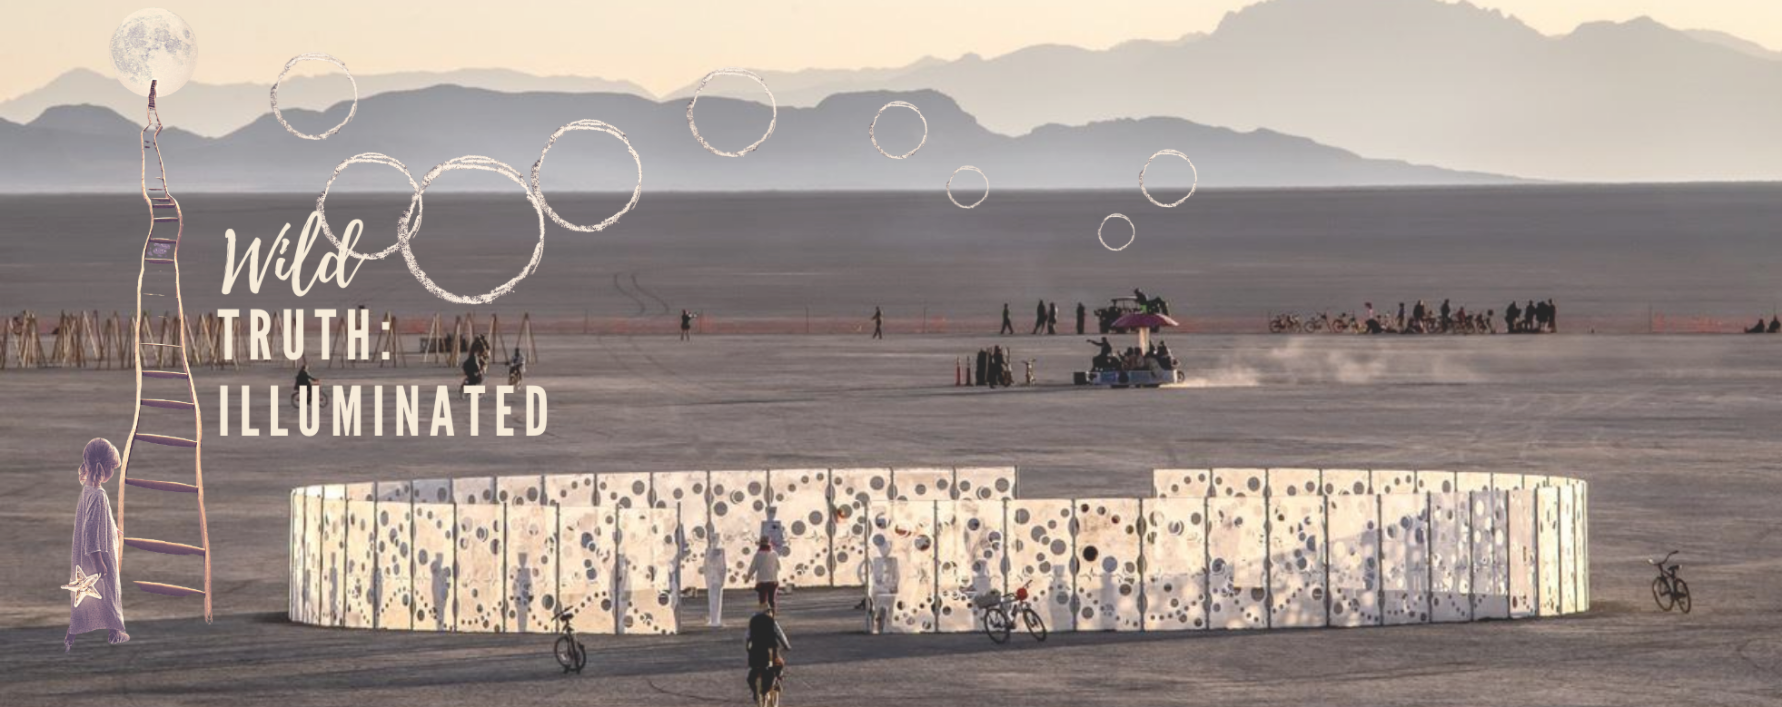 featured image showing a Burning Man art installation out in the Black Rock Desert of Nevada